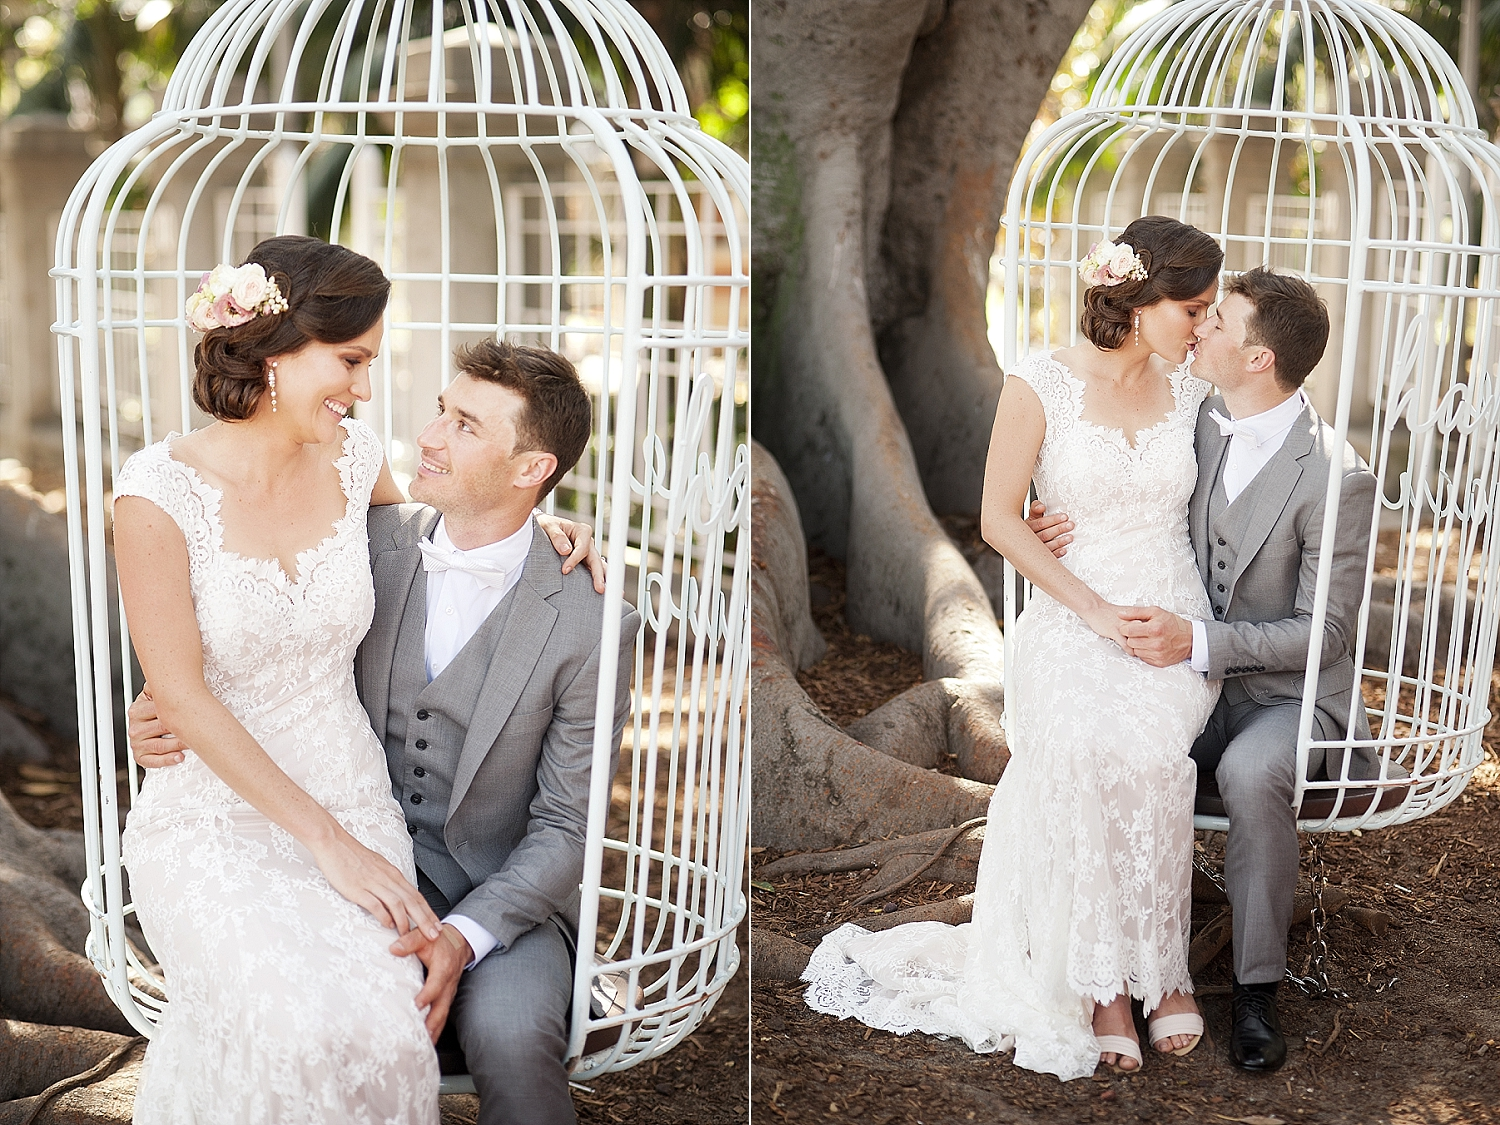 28 bride and groom in giant birdcage murray st perth 030.jpg